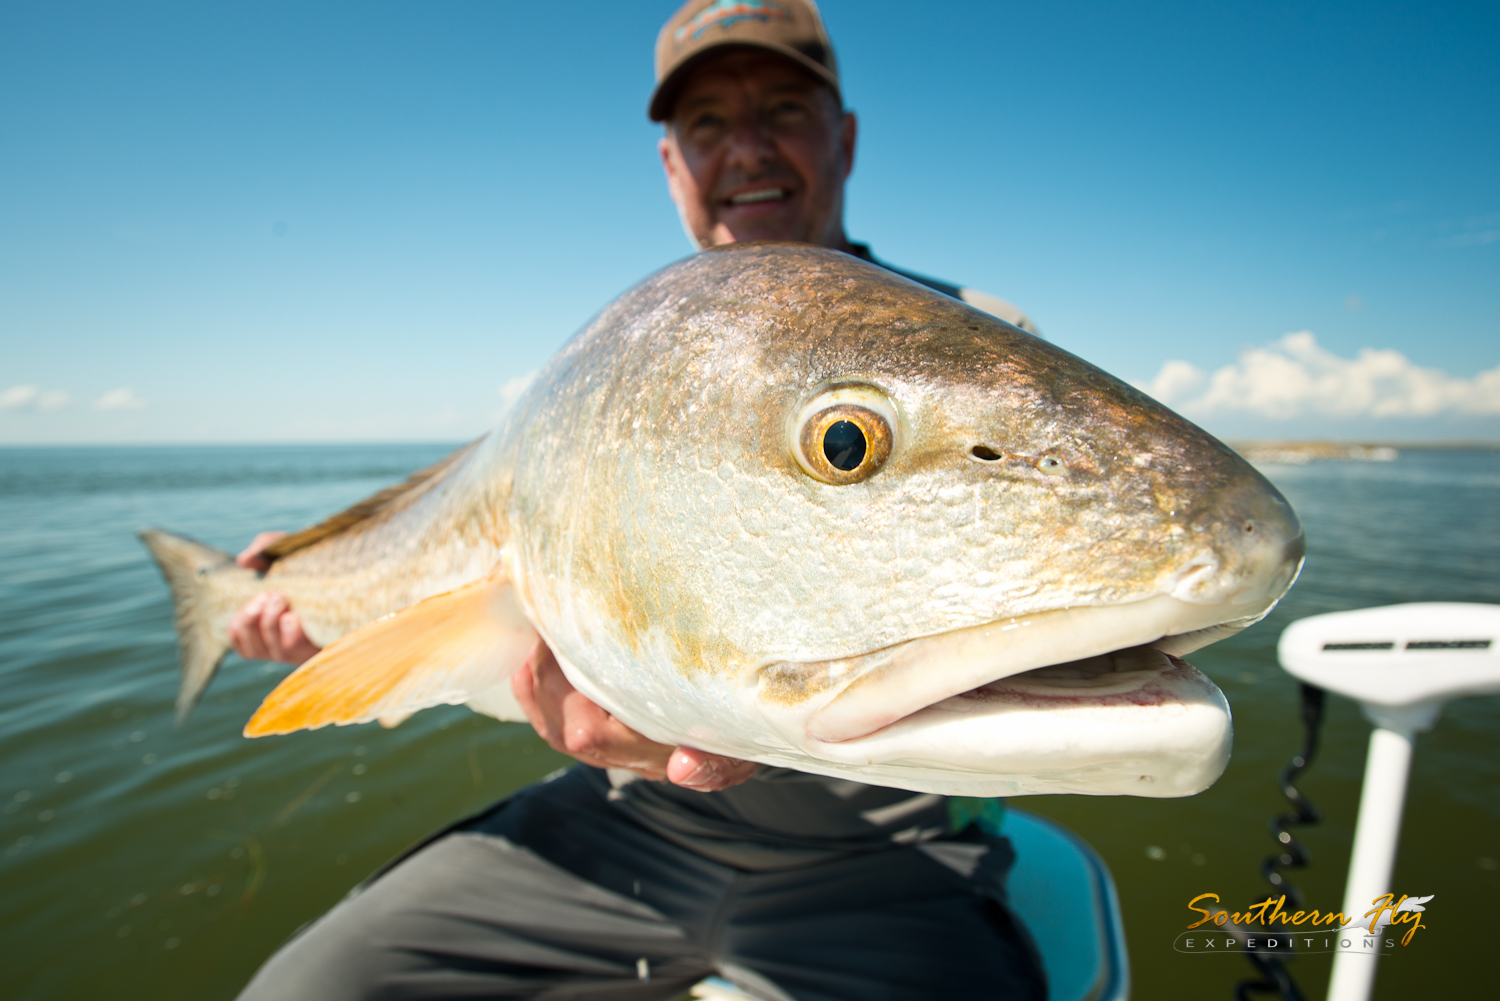 best fishing charter in new orelans louisiana Southern Fly Expeditions